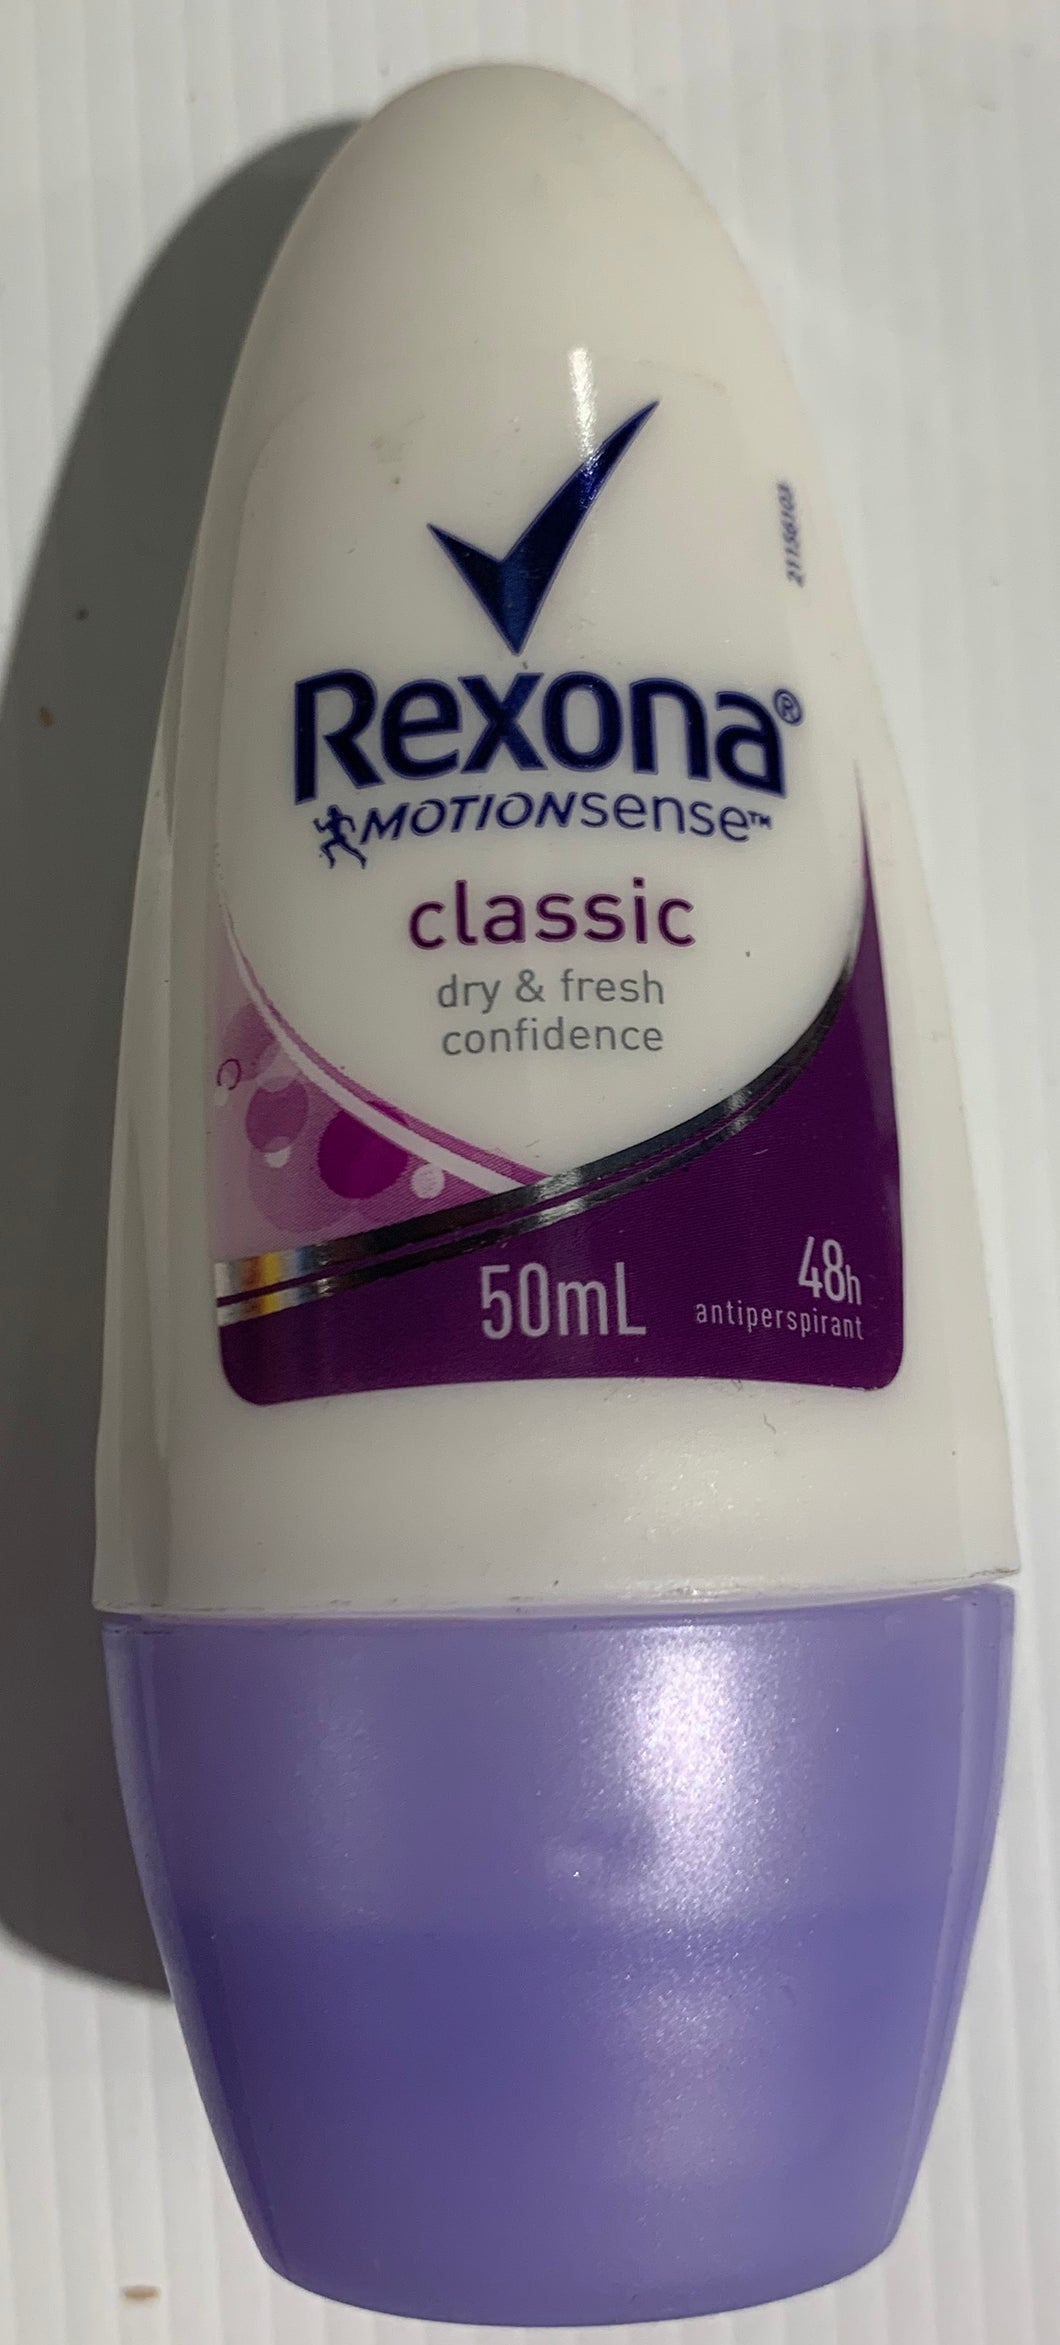 Rexona CLASSIC Roll On Deodorant 48h Antiperspirant 50ml